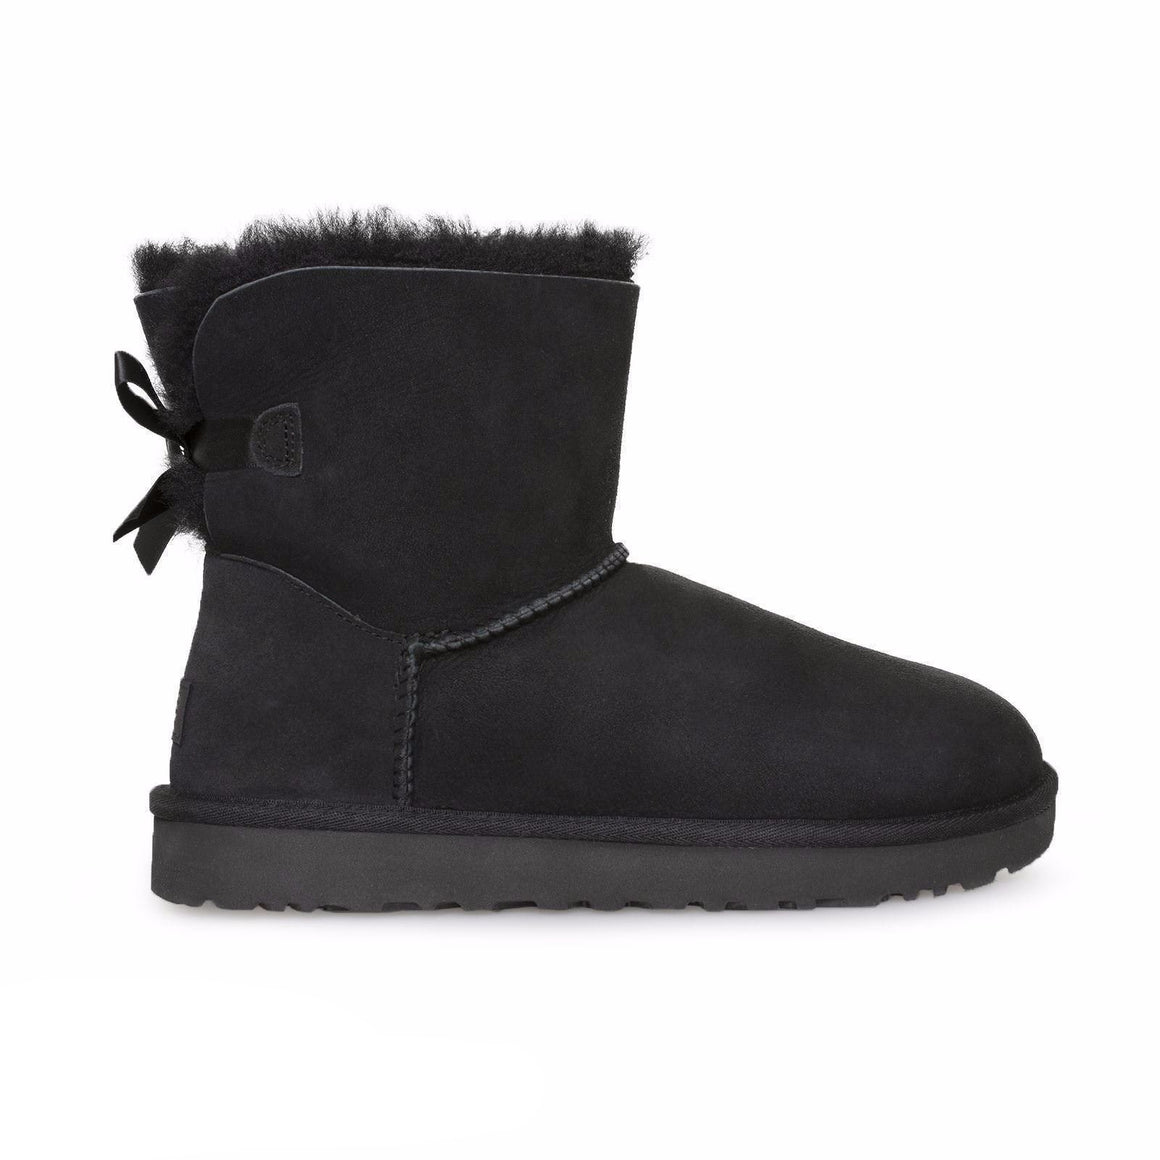 UGG Mini Bailey Bow II Black Boots - Youth